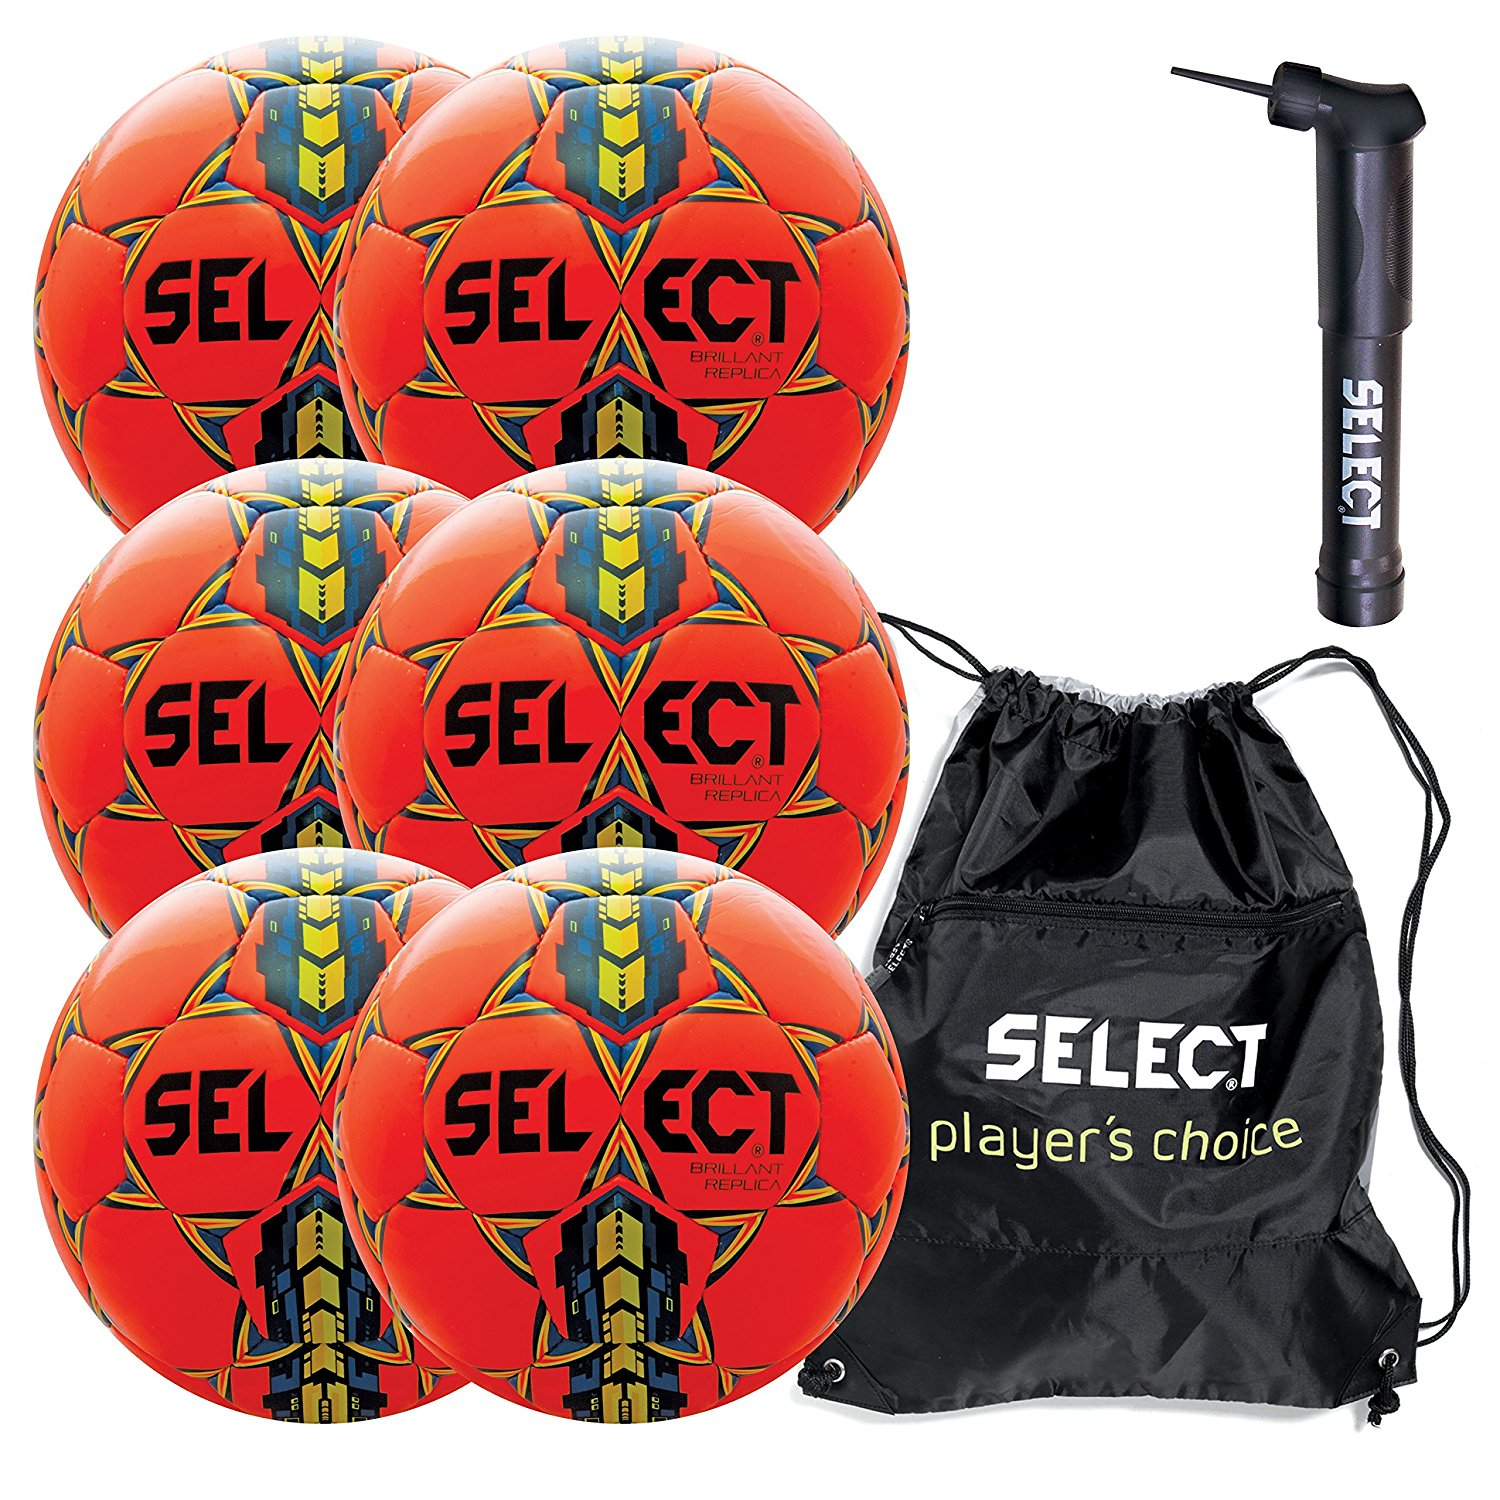 Select Brilliant Super Replica Soccer Ball with Sack Pack & Hand Pump (Pack of 6)